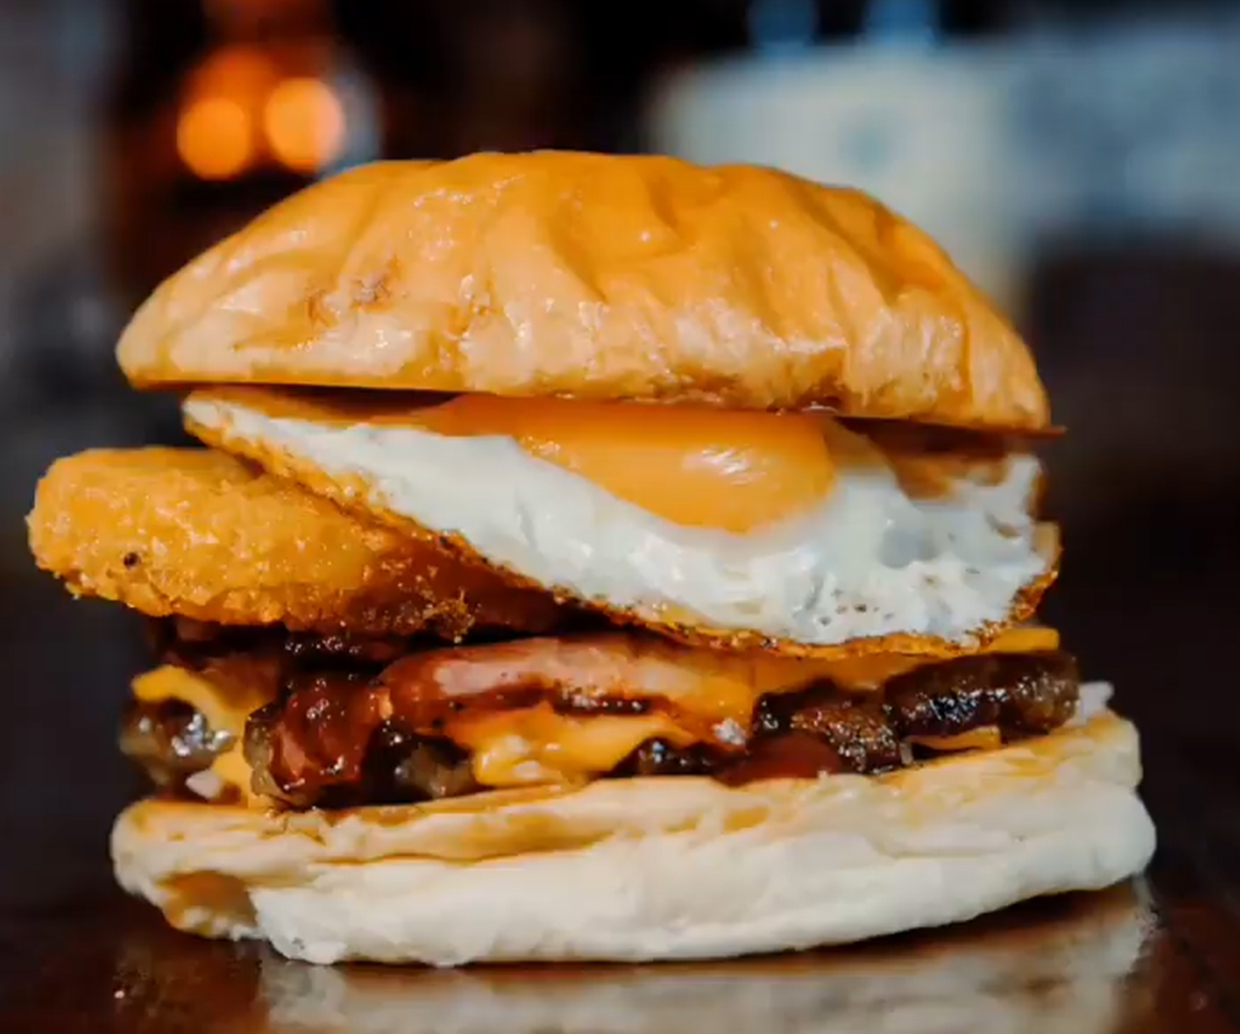 mary's loaded bacon and egg breakfast burger with gooey egg